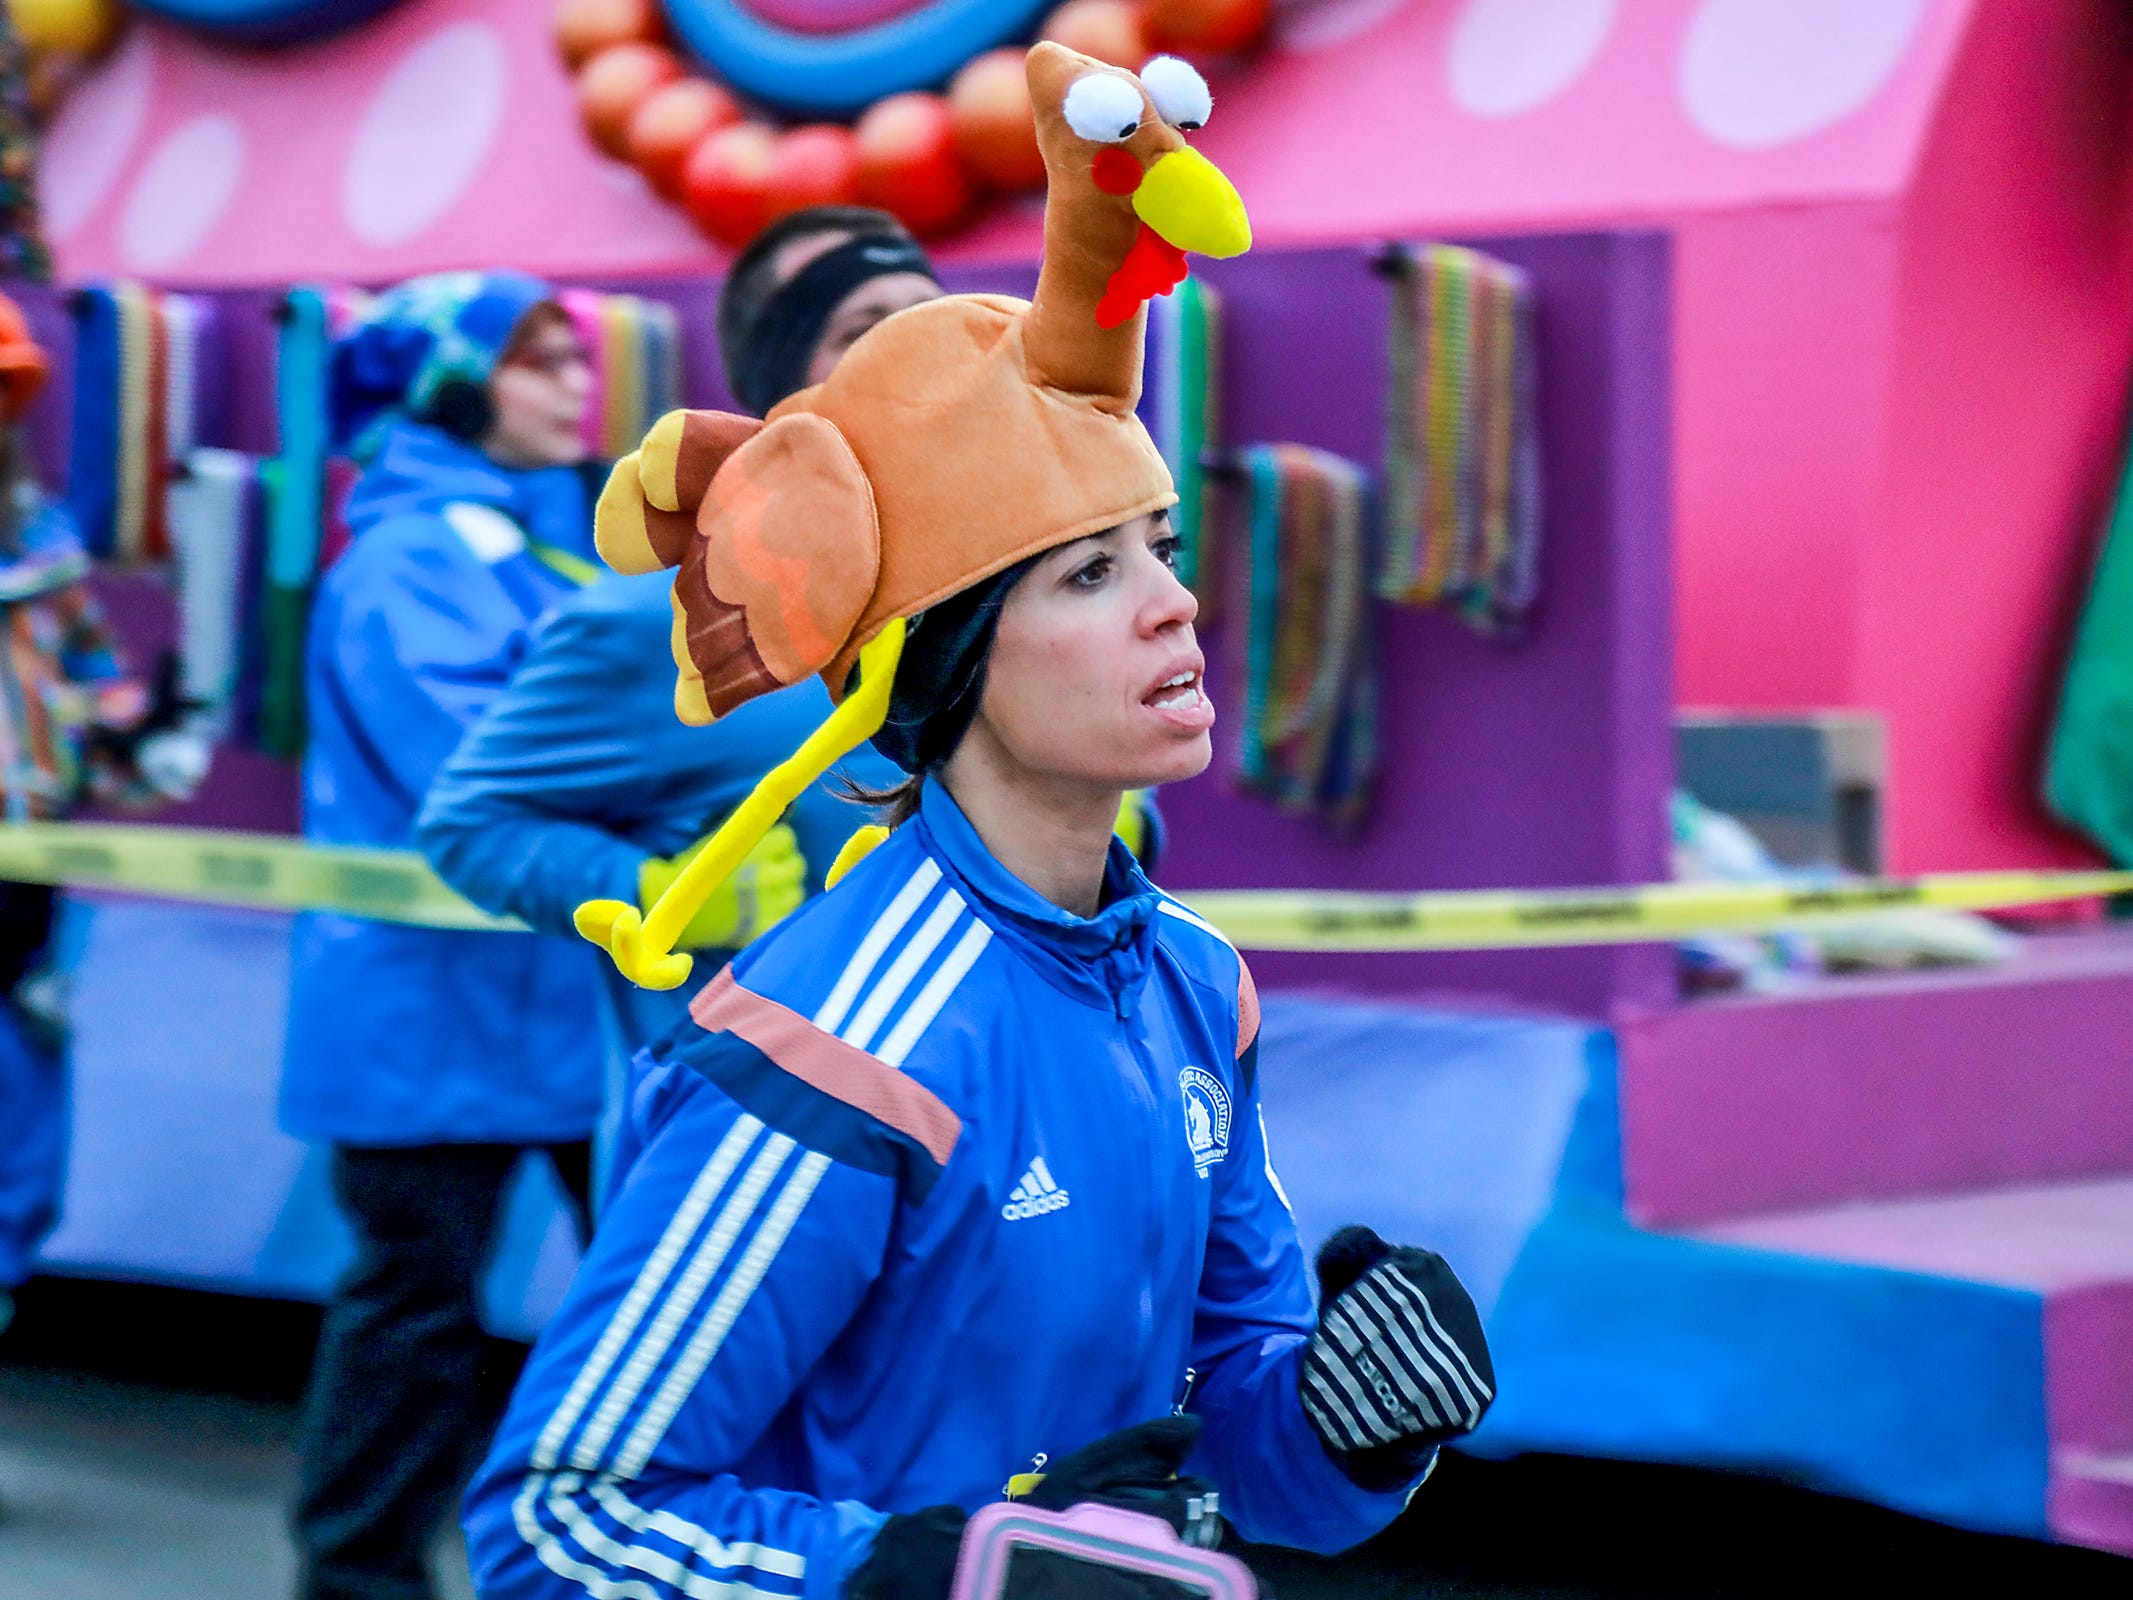 Runners participate in the Turkey Trot before the start of America's Thanksgiving Parade in Detroit on Thursday, Nov. 22, 2018.